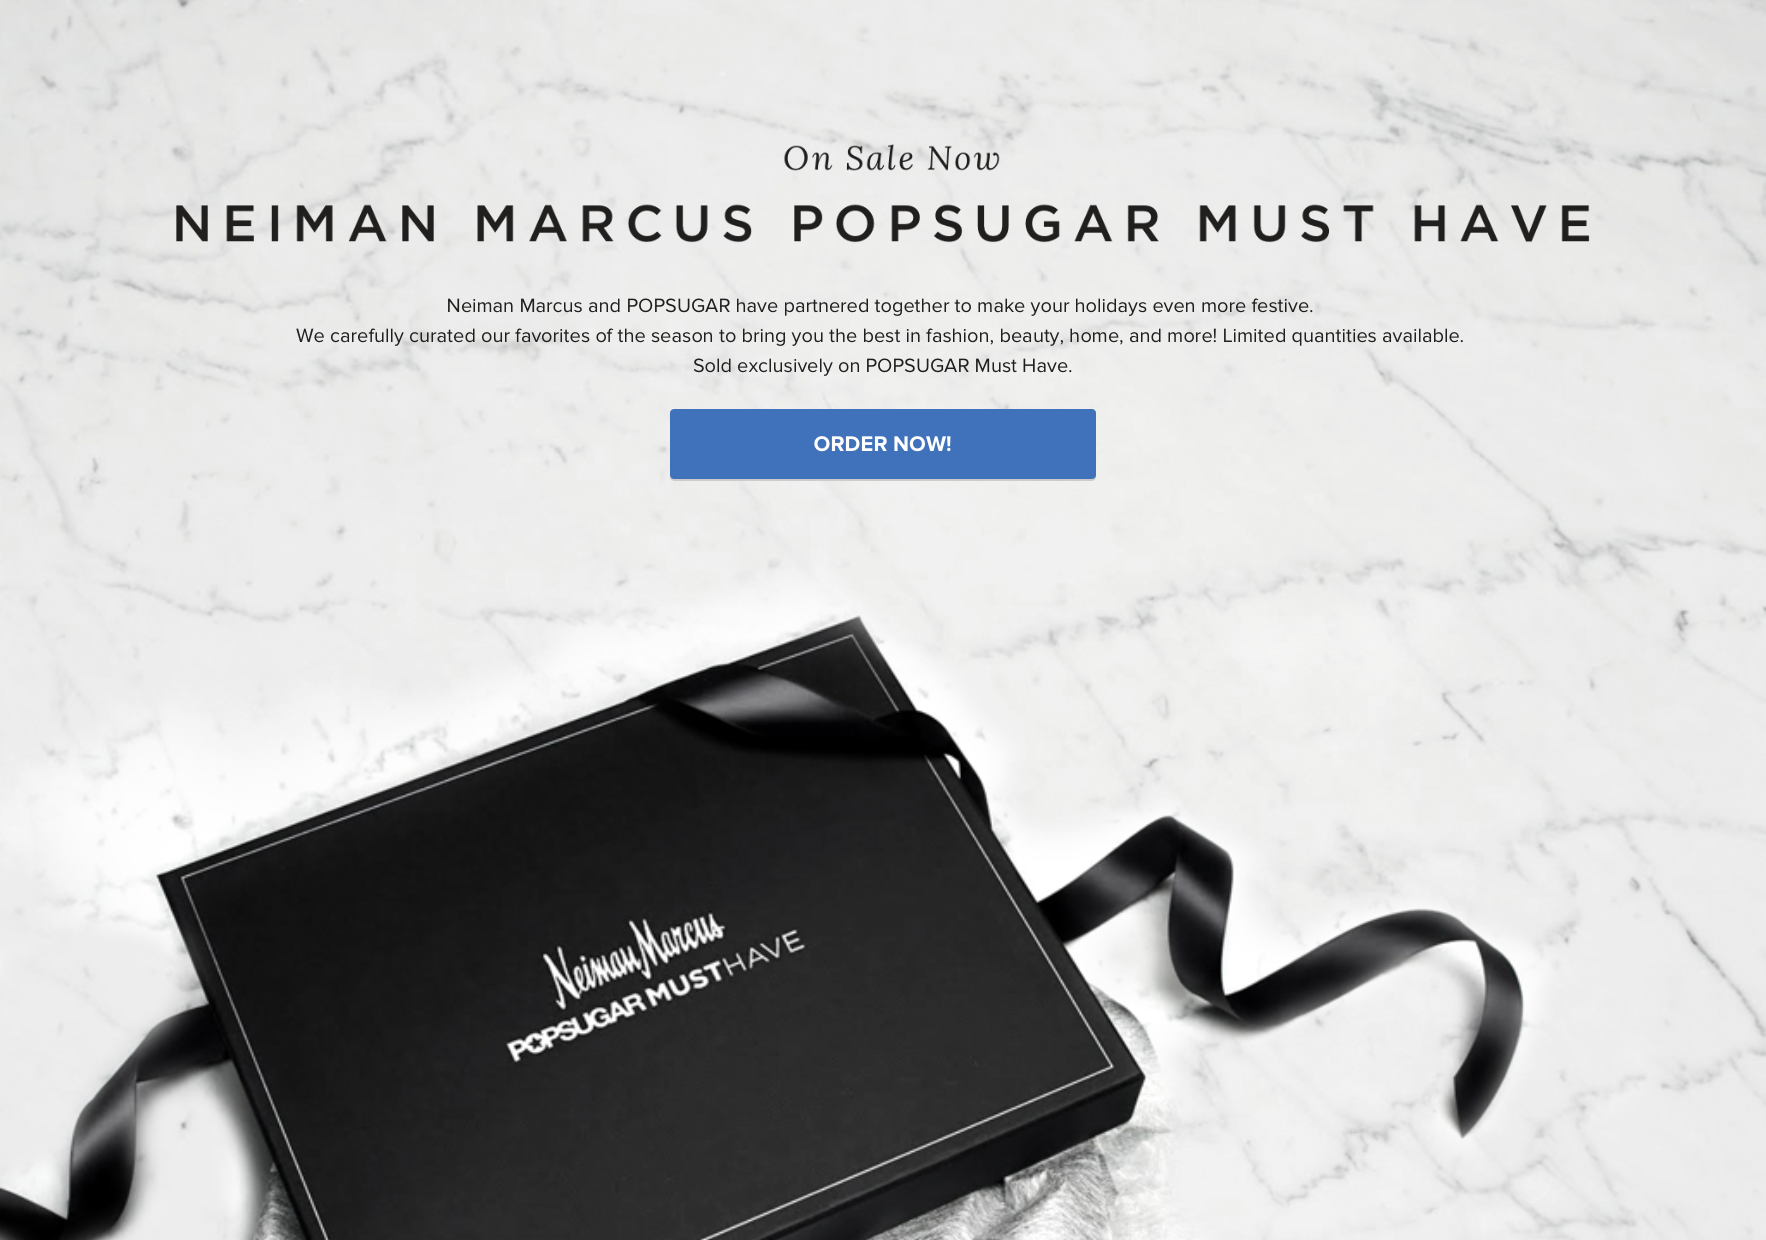 Neiman Marcus Popsugar Must Have Special Edition 2015 ON SALE NOW!